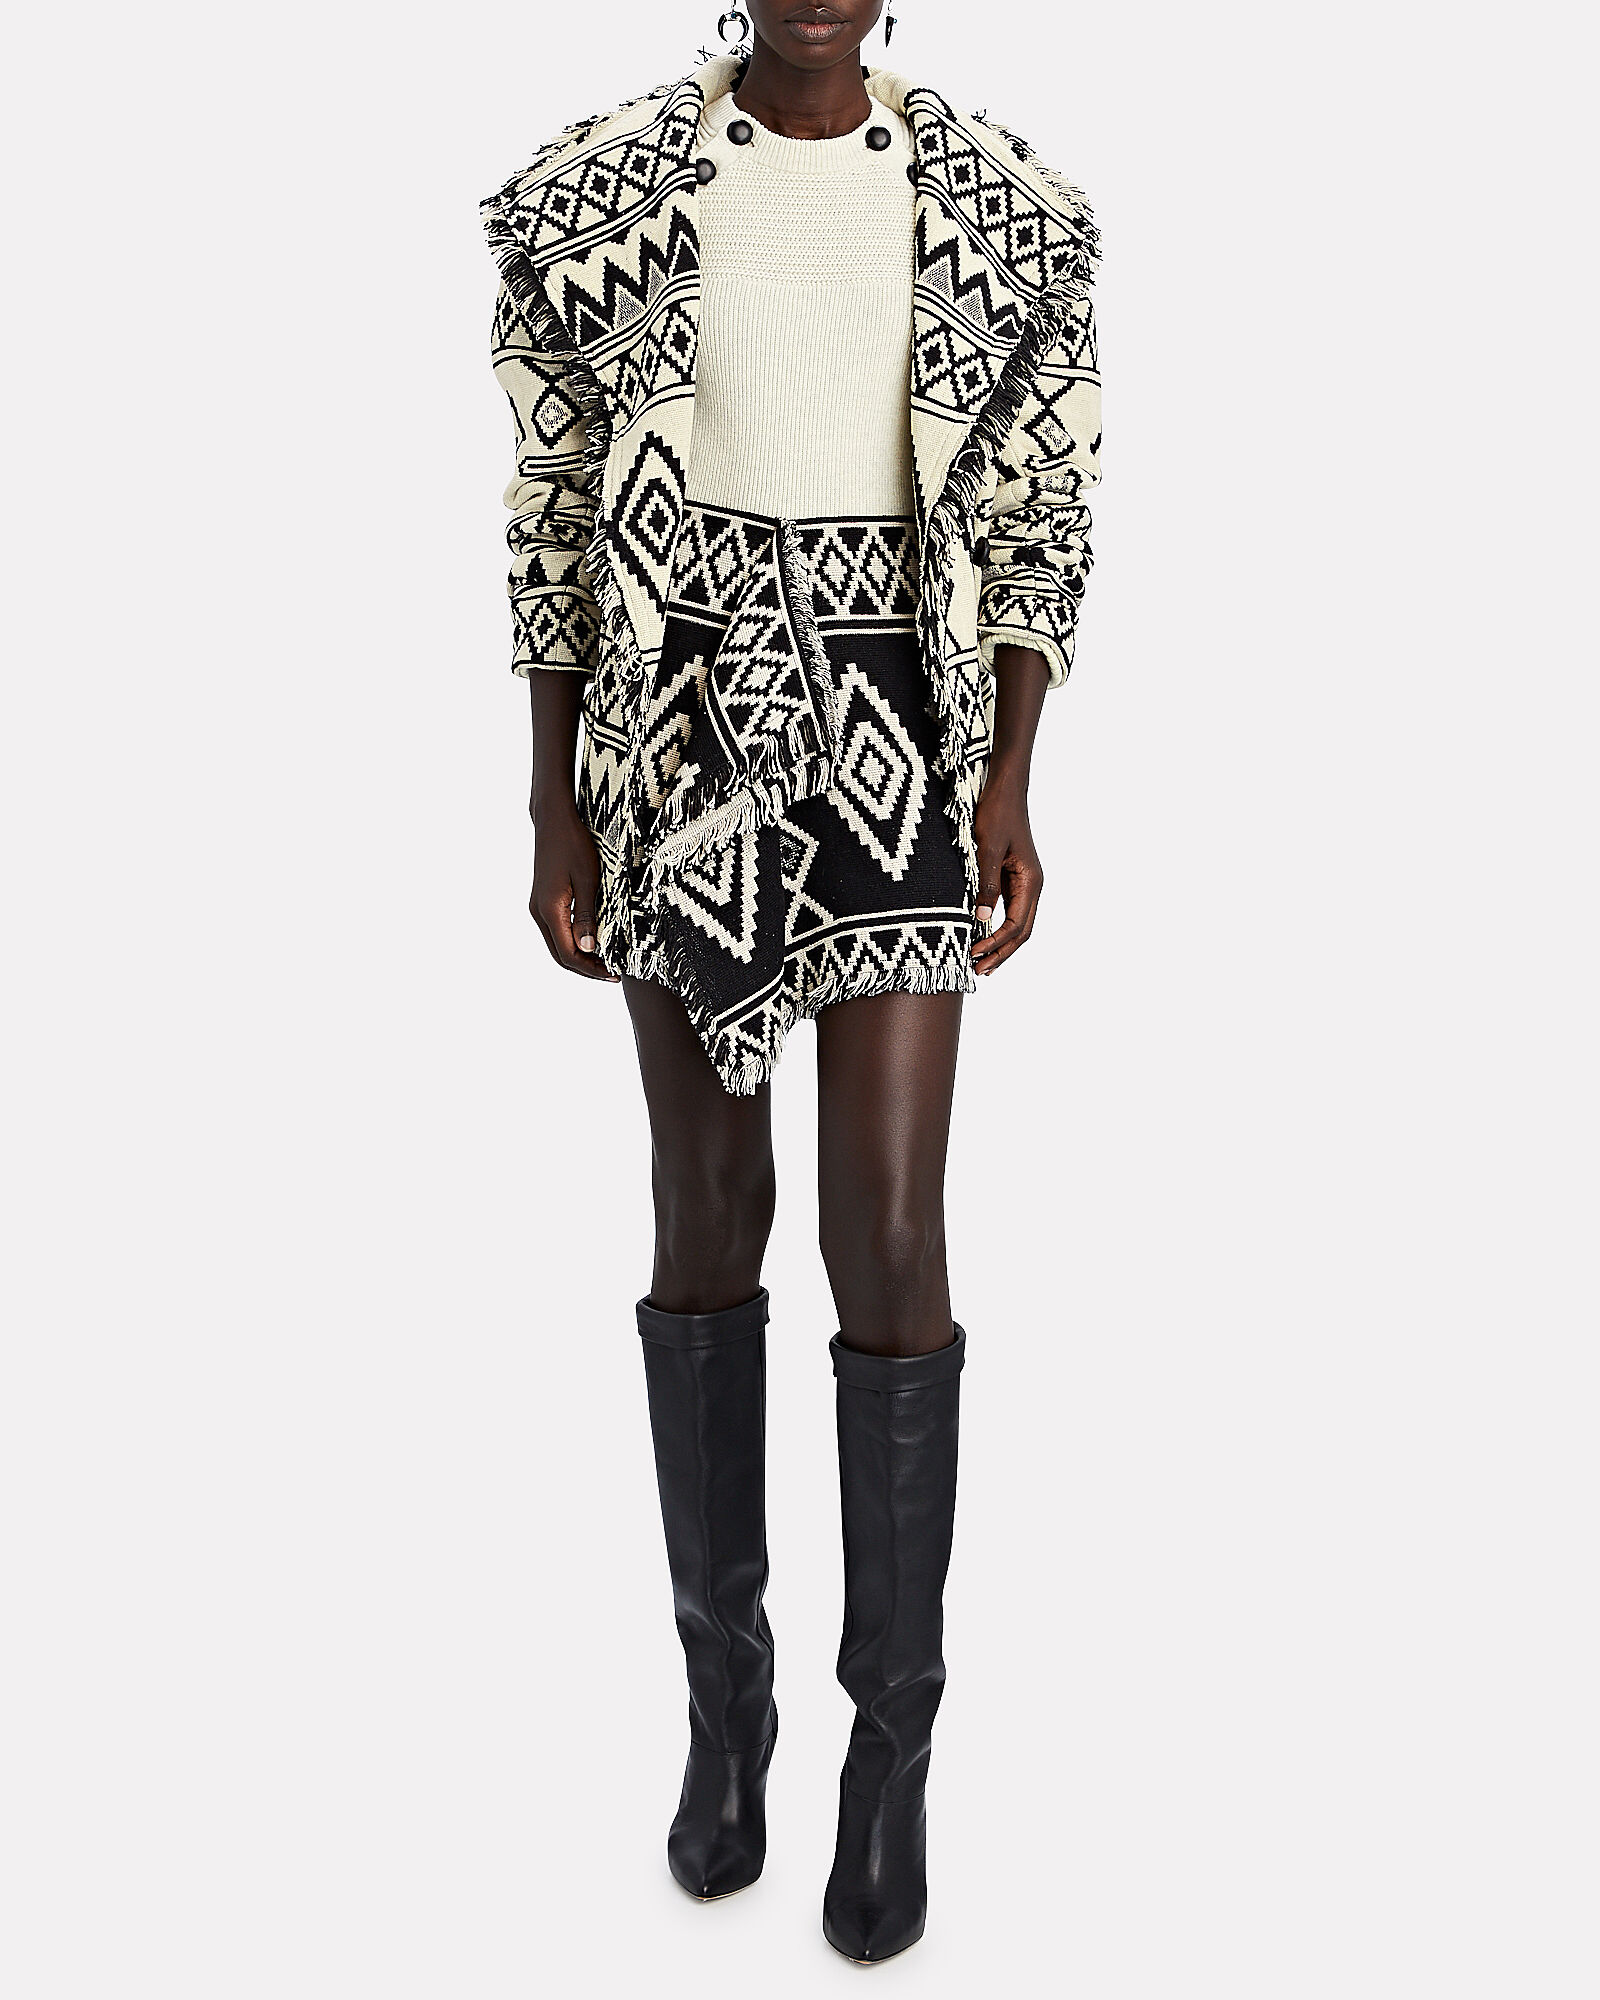 Josiali Fringed Jacquard Cotton Jacket, MULTI, hi-res